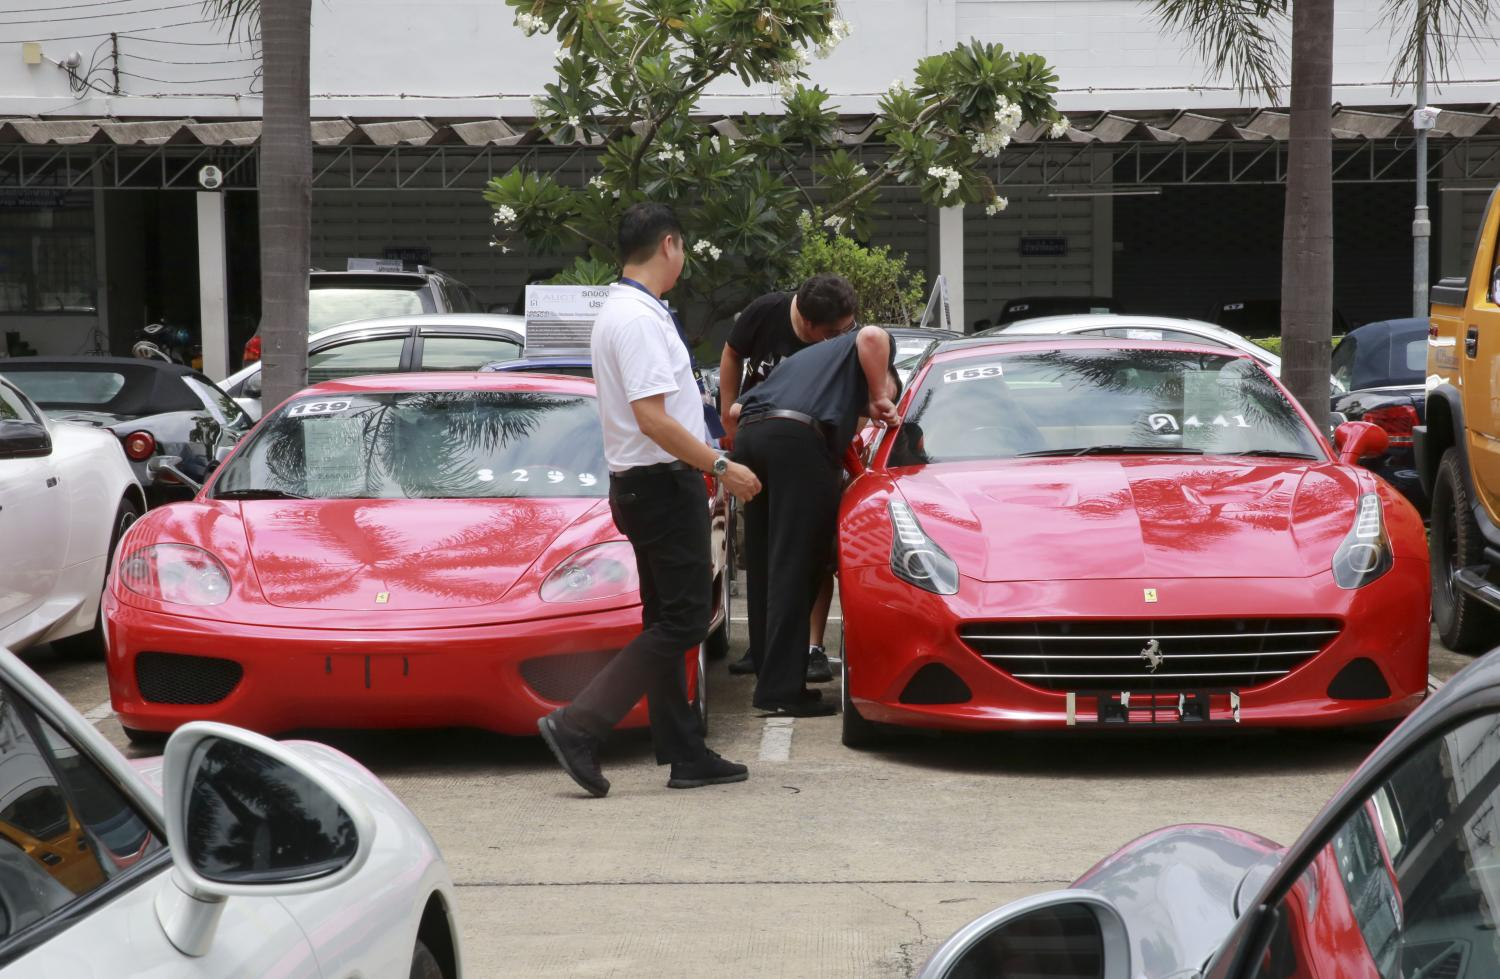 Visitors inspect a Ferrari put up for auction by the Customs Department before the Land Transport Department began refusing registrations in 2017. (Photo by Taweechai Tawatpakorn)